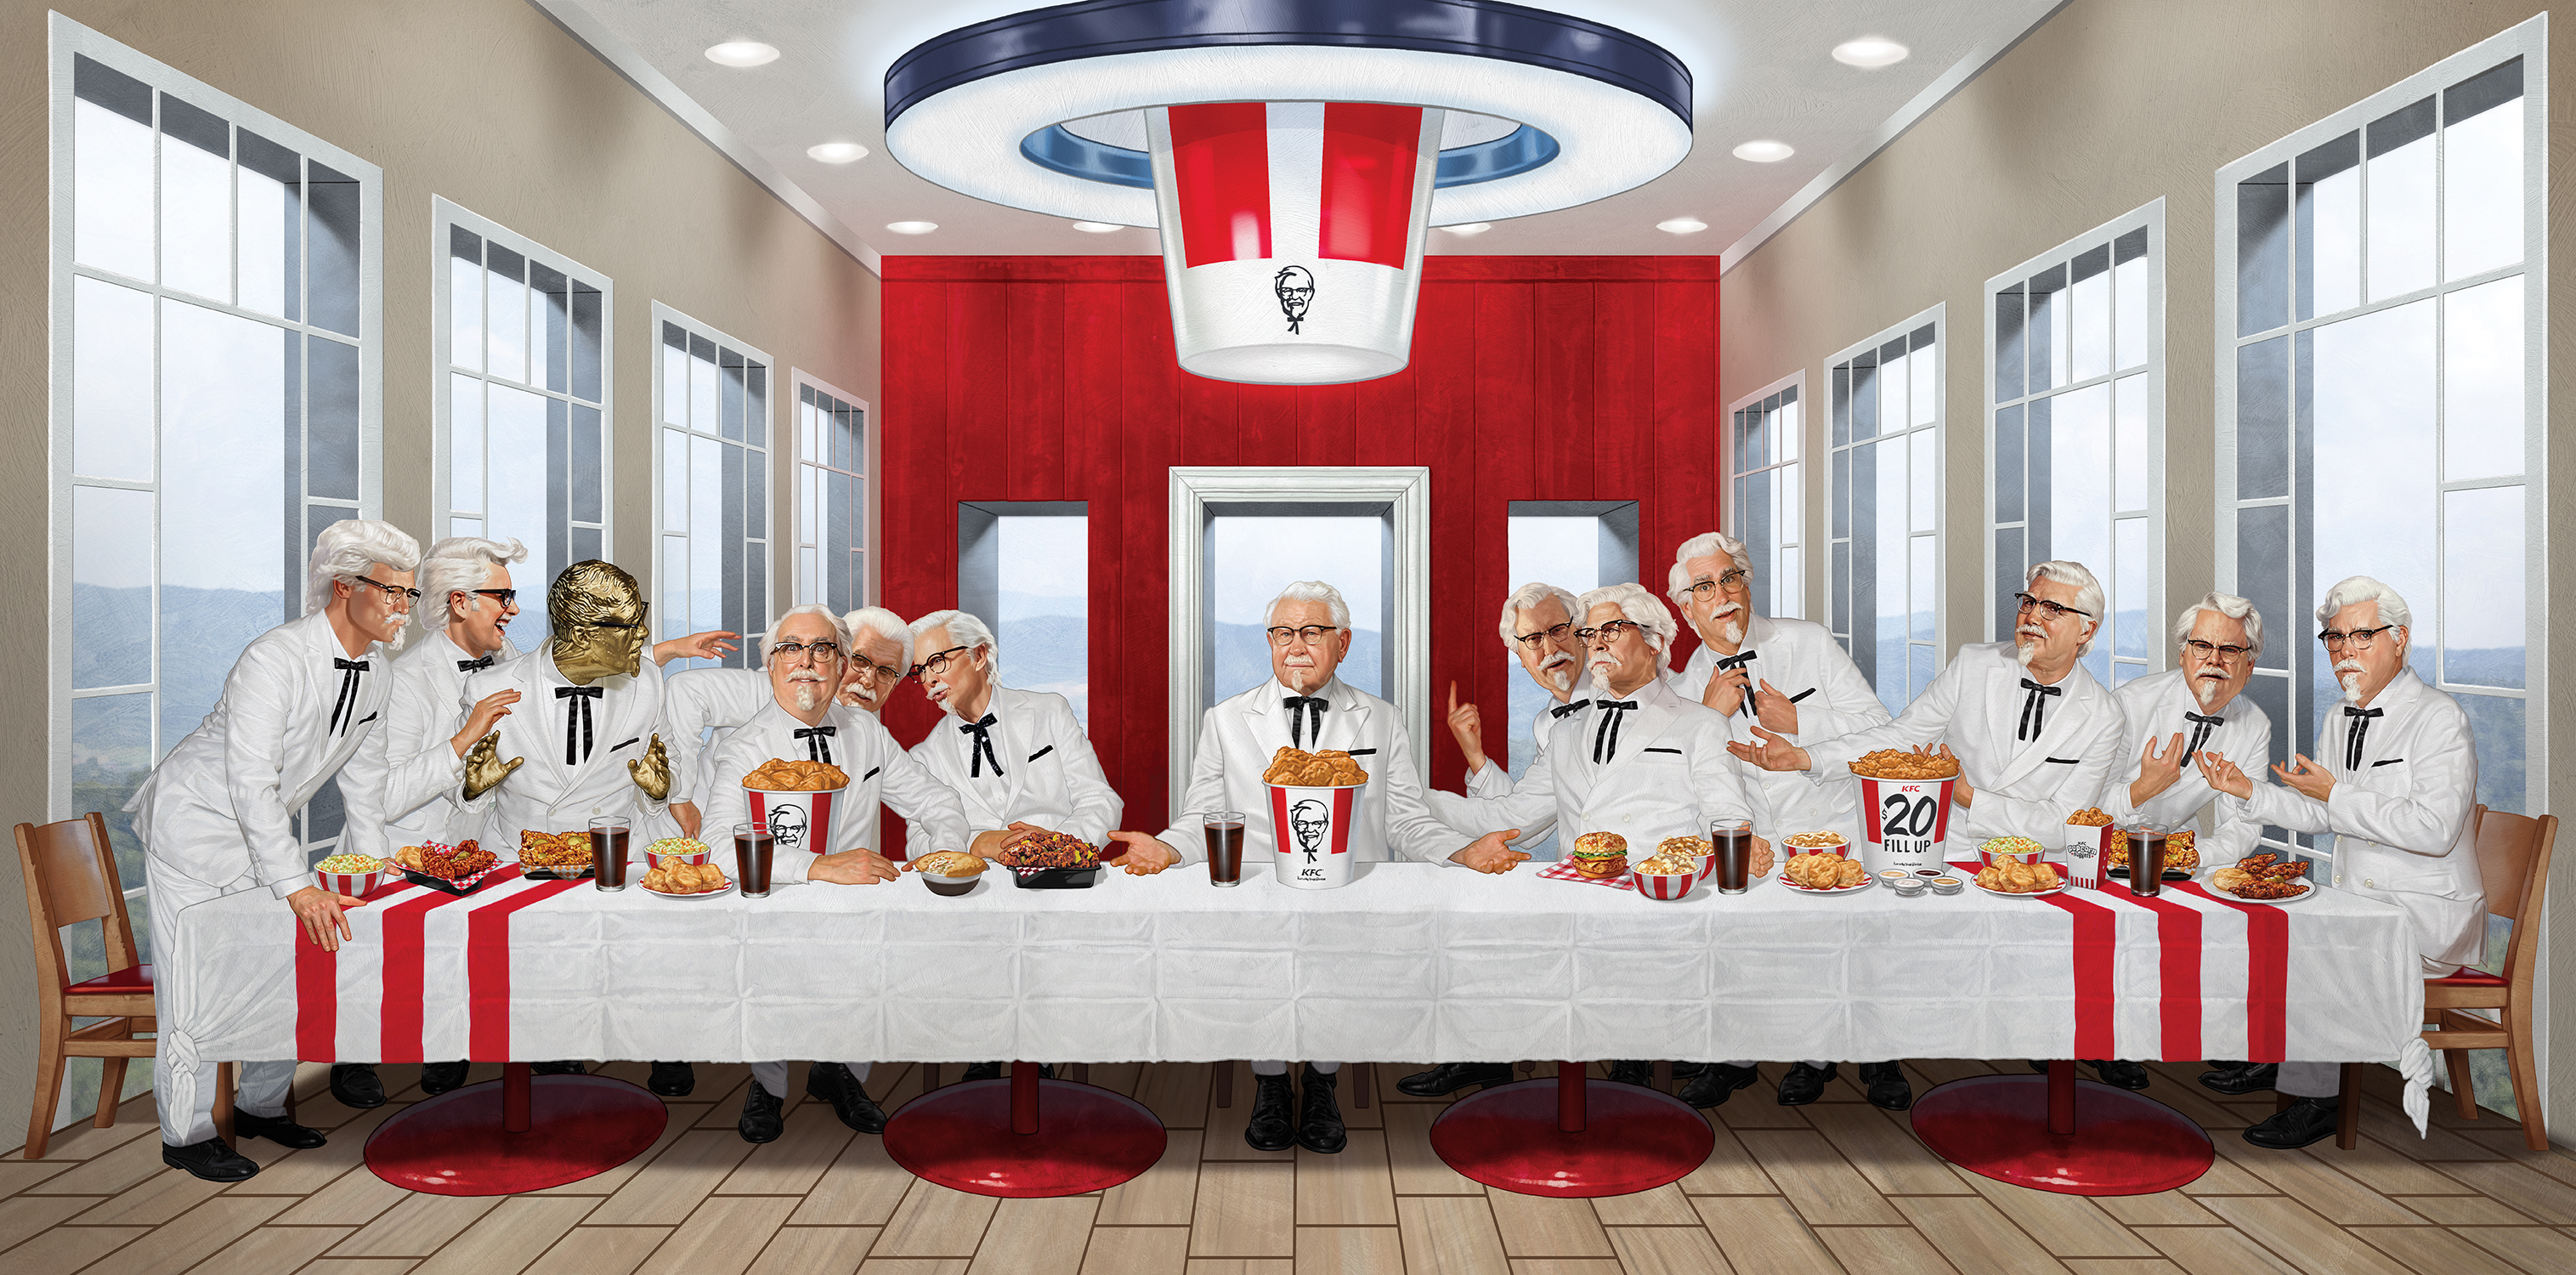 KFC Last Supper Illustration